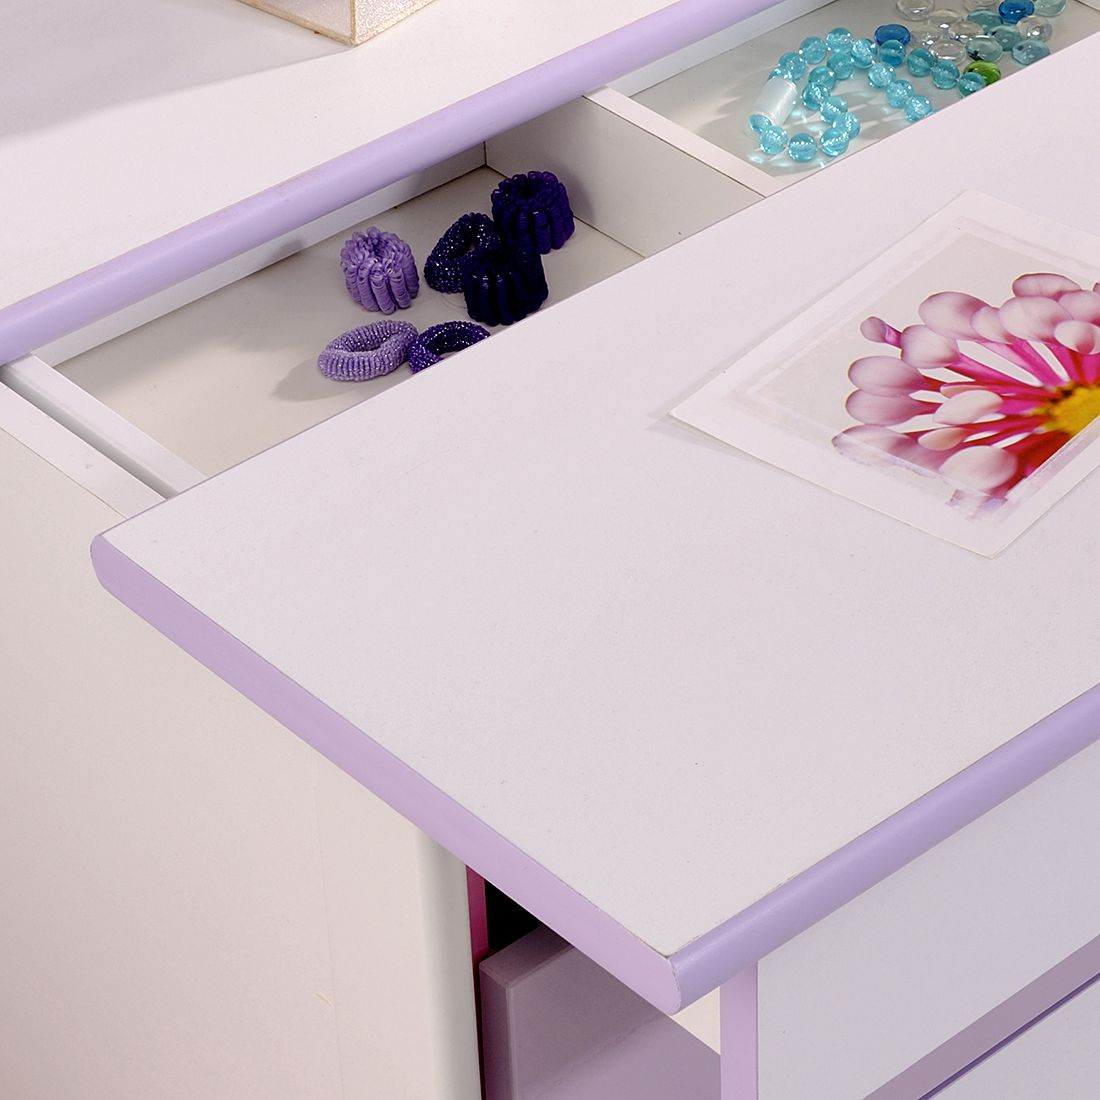 Xynto Kommode : Gr e bht farbe violett wei material holz style